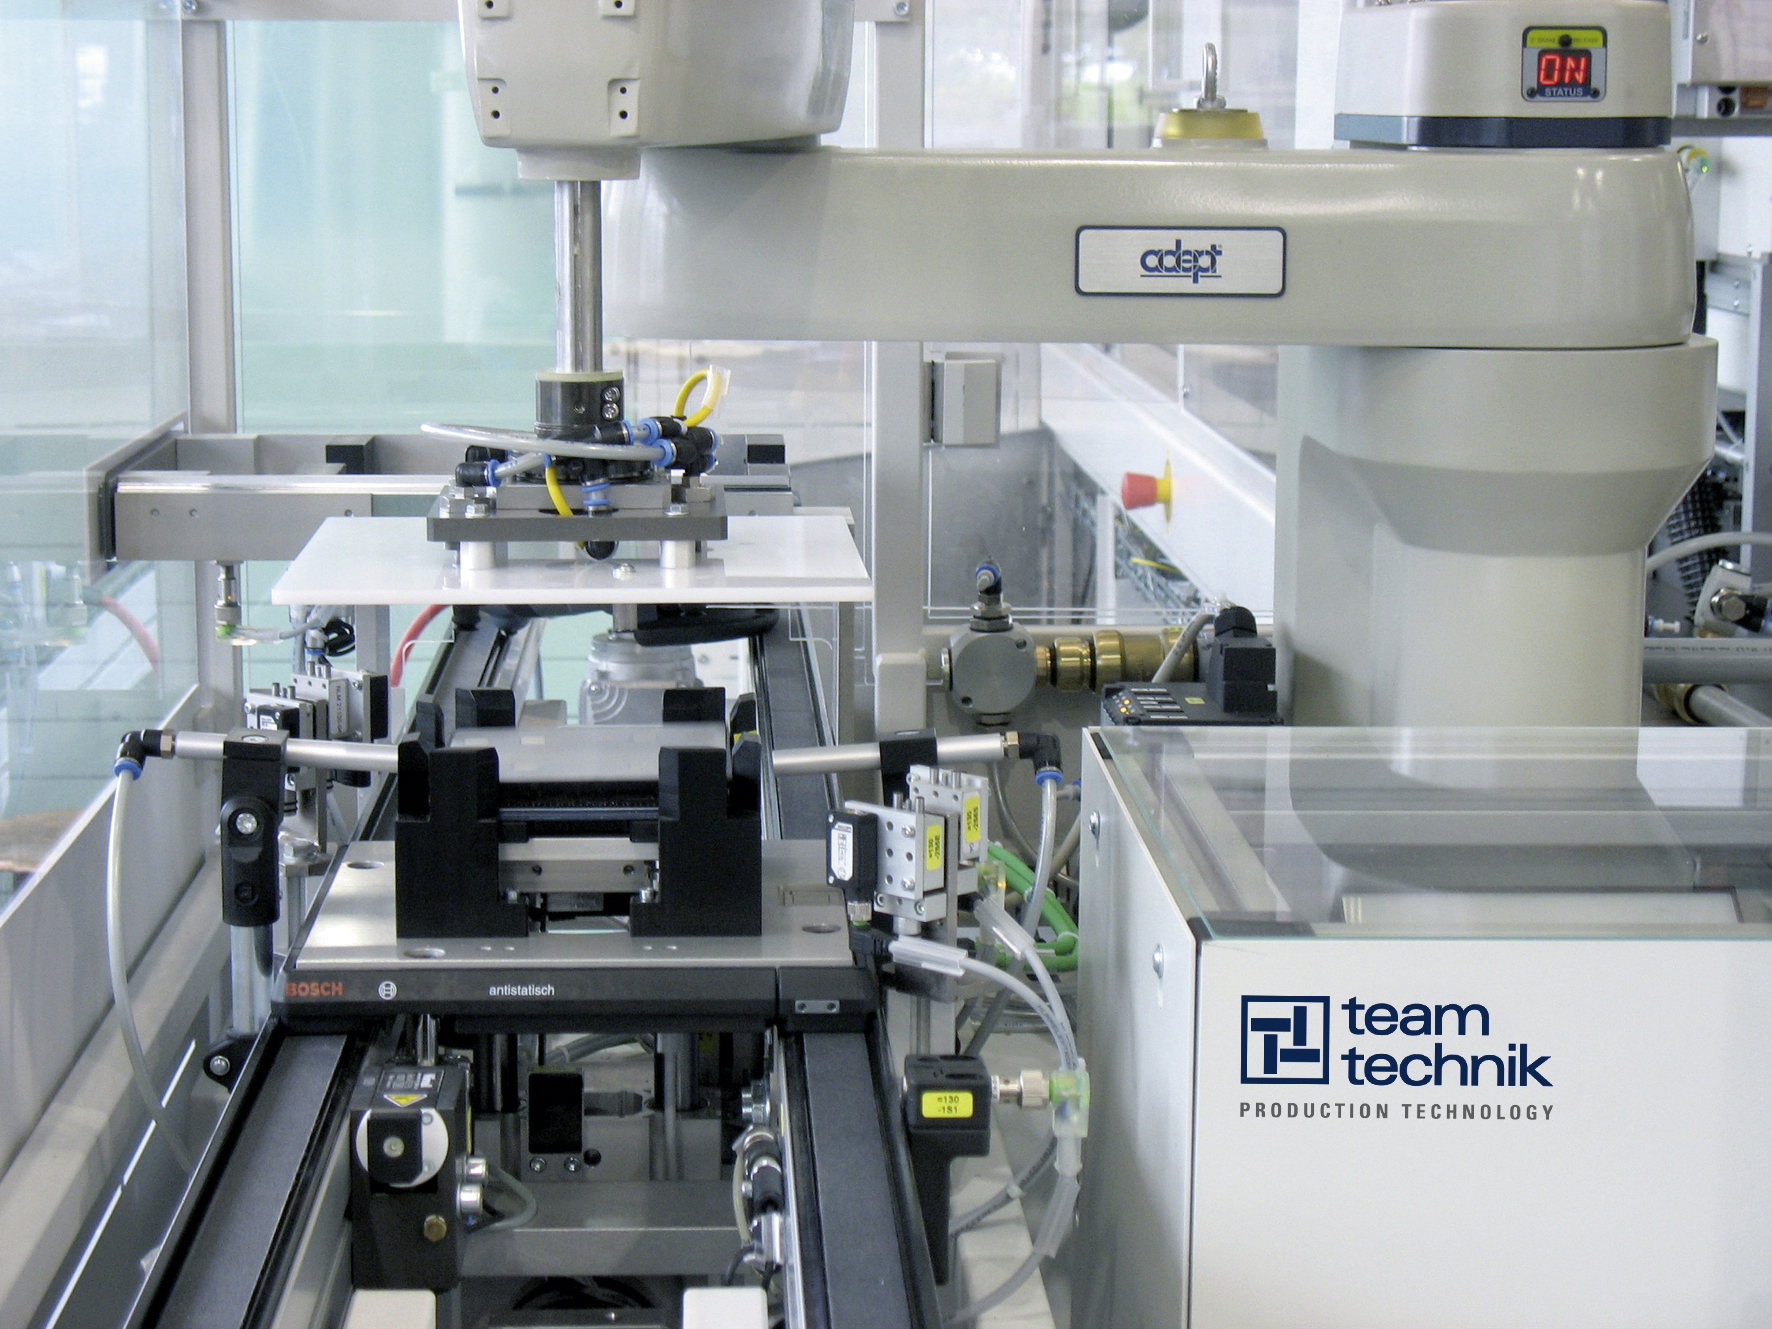 Omron Adept Technologies Adept Robot And Repair Services